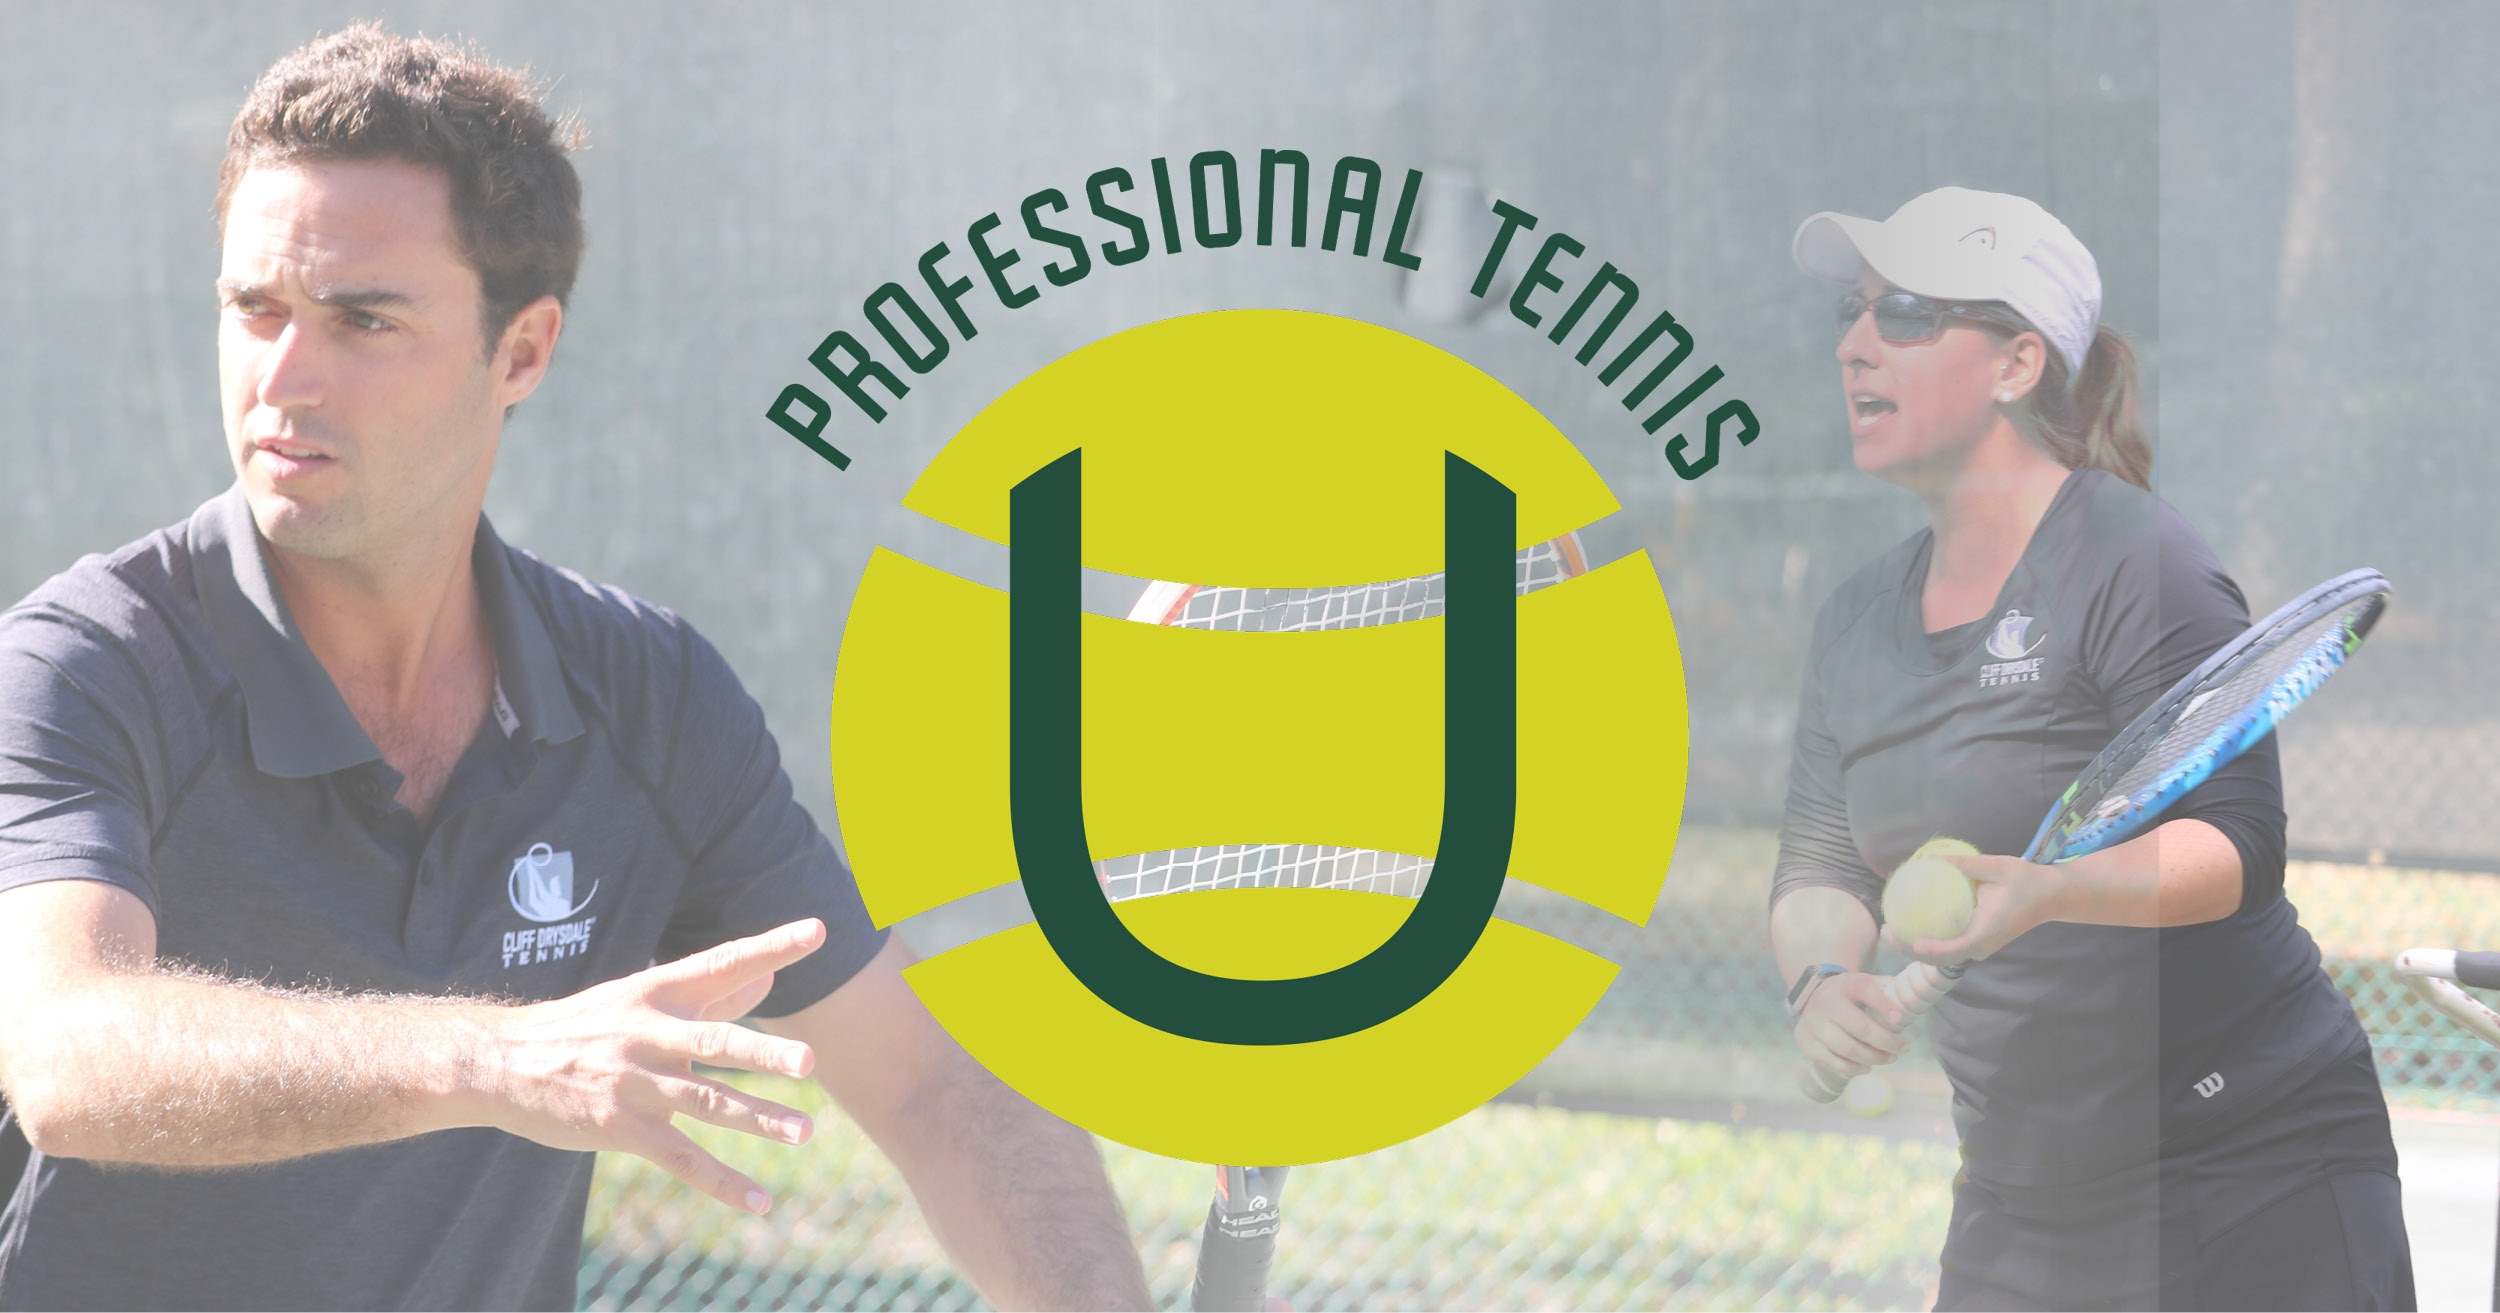 Cliff Drysdale Management Introduces Professional Tennis U